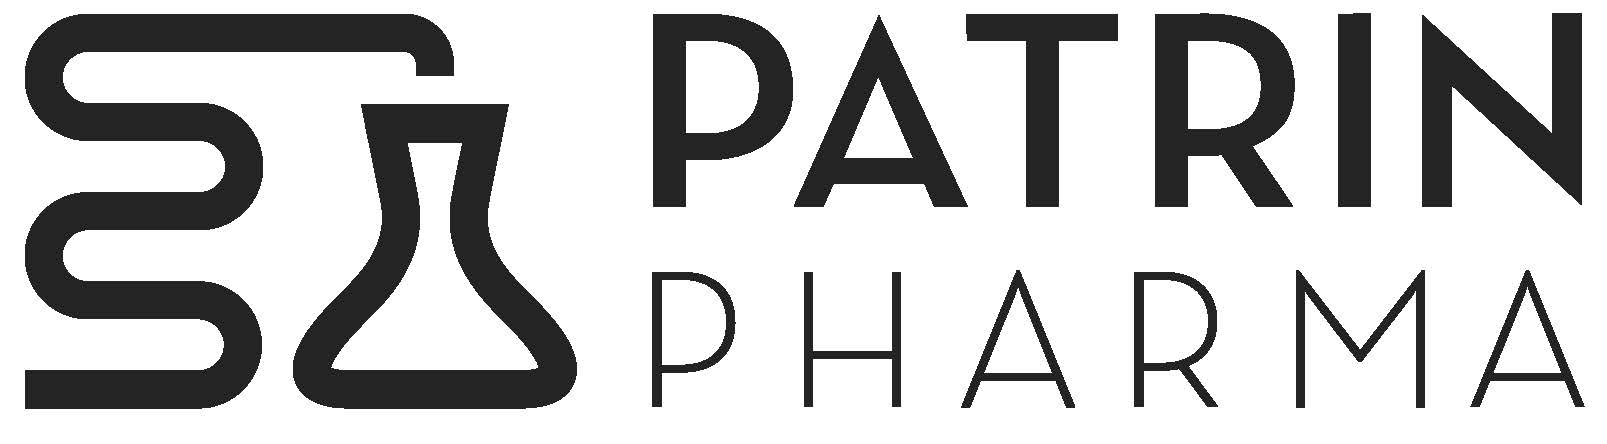 Patrin Pharma, Inc. - Jobs: Warehouse Associate - Apply Online